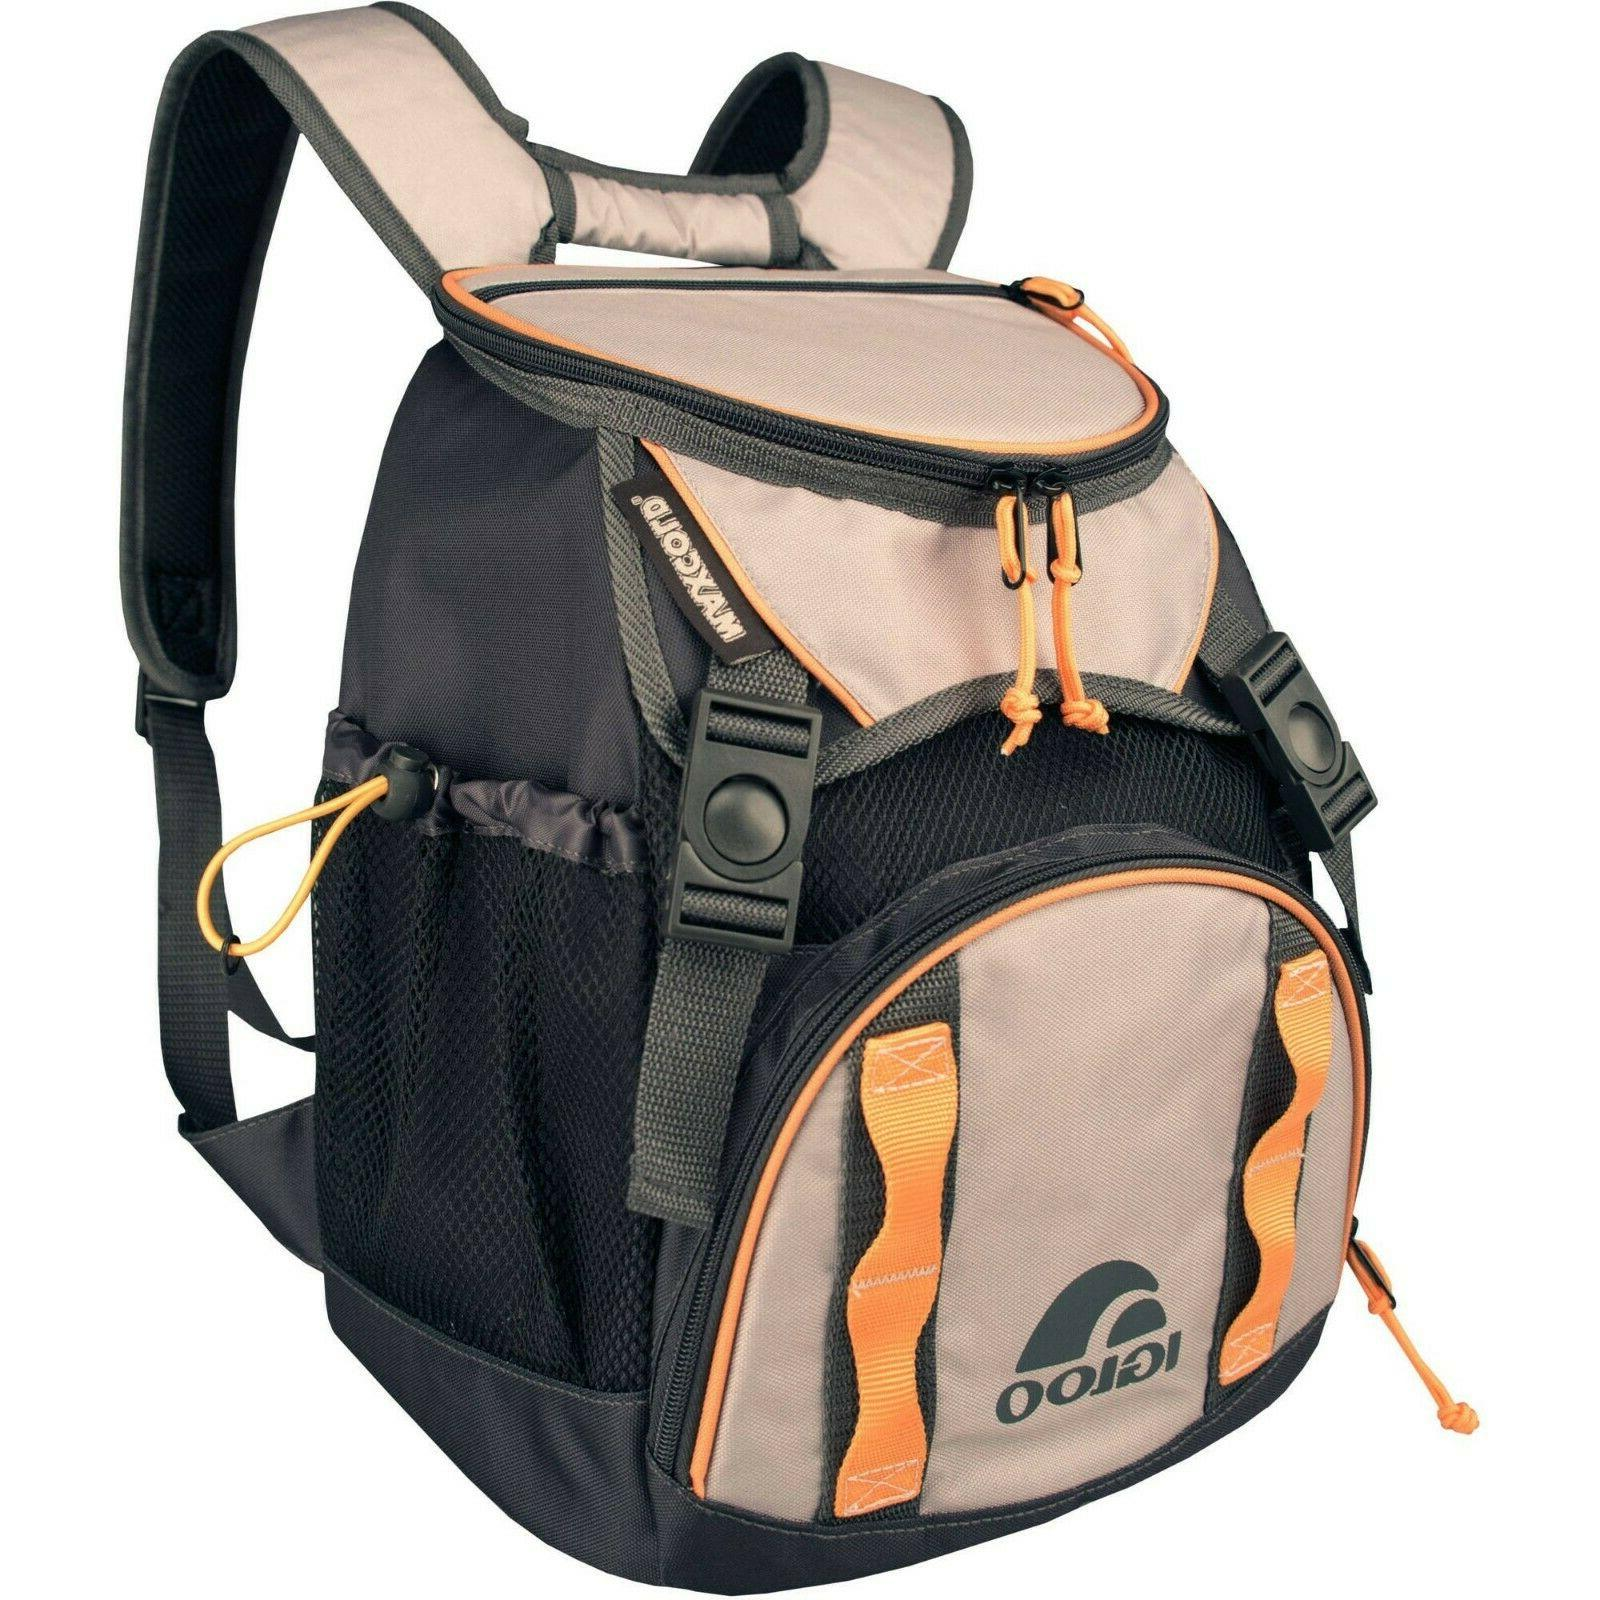 backpack cooler outdoor camping durable sleek sturdy